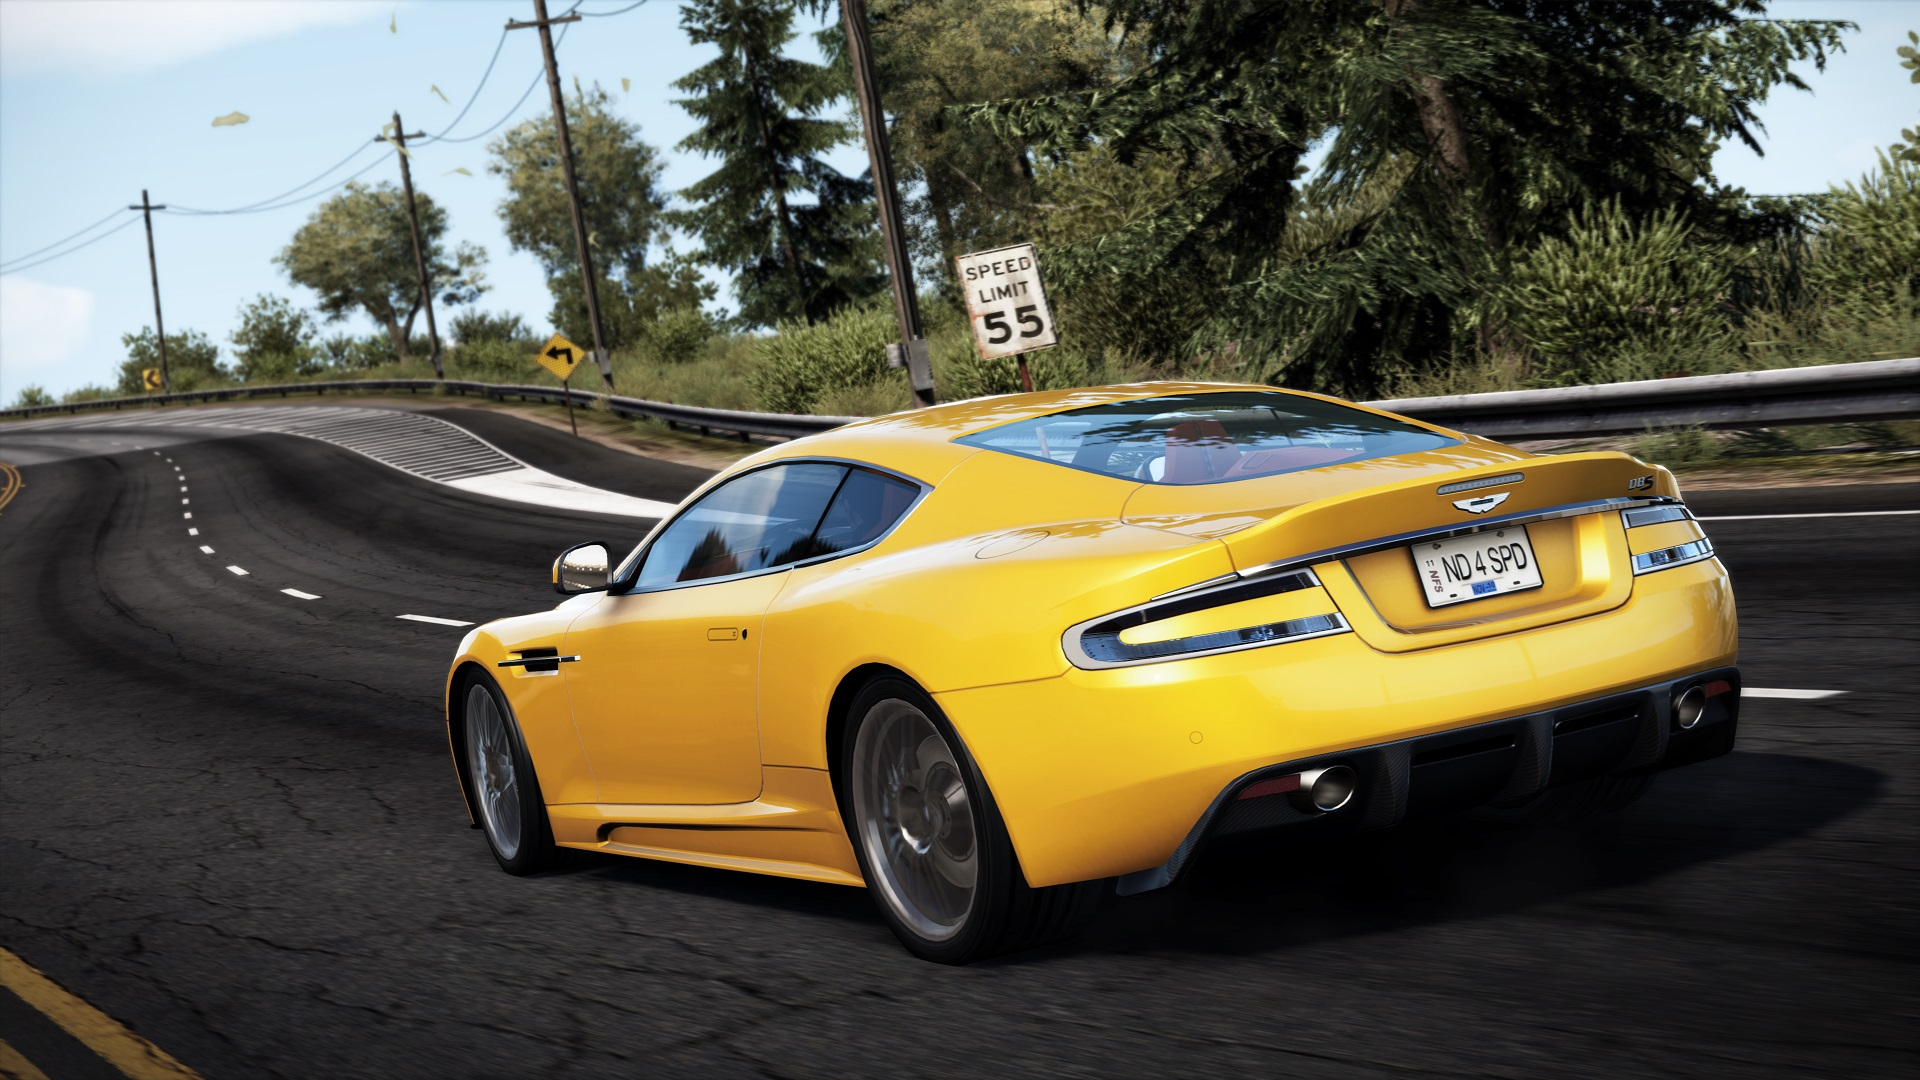 aston martin dbs need for speed wiki fandom powered by wikia. Black Bedroom Furniture Sets. Home Design Ideas